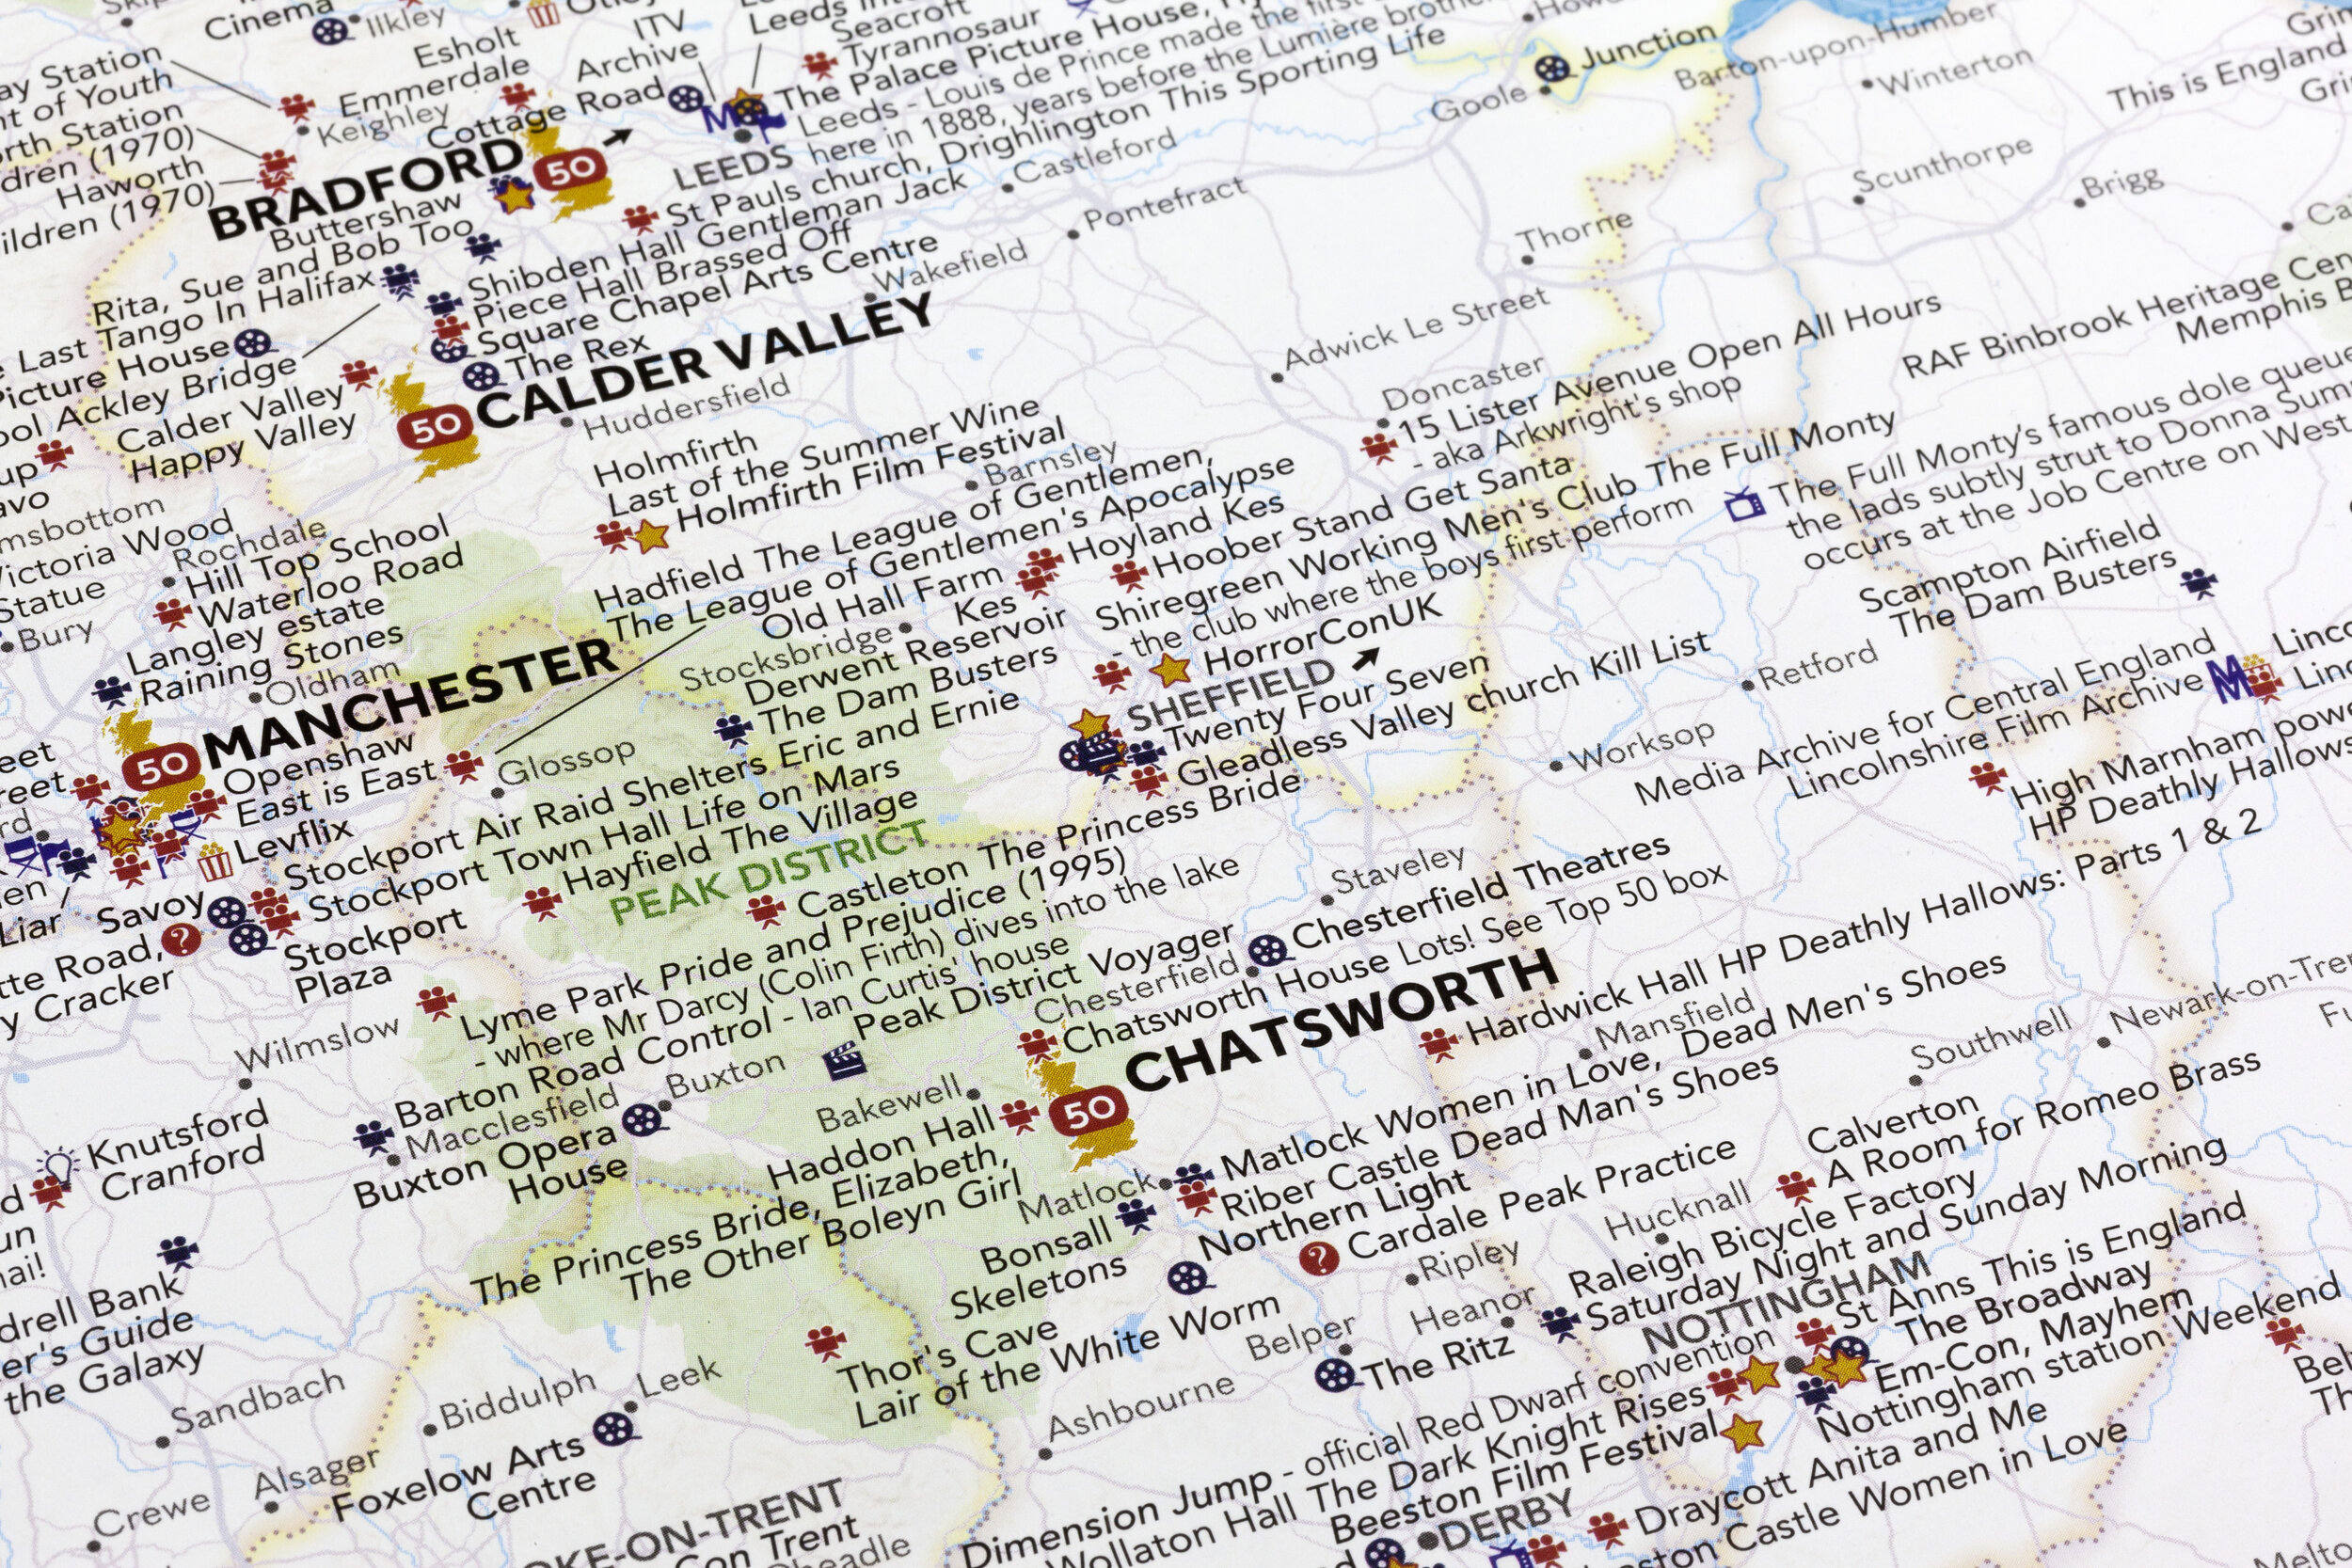 ST&G's Lavishly Produced Great British Film and TV Map - Chatsworth and Sheffield.jpg